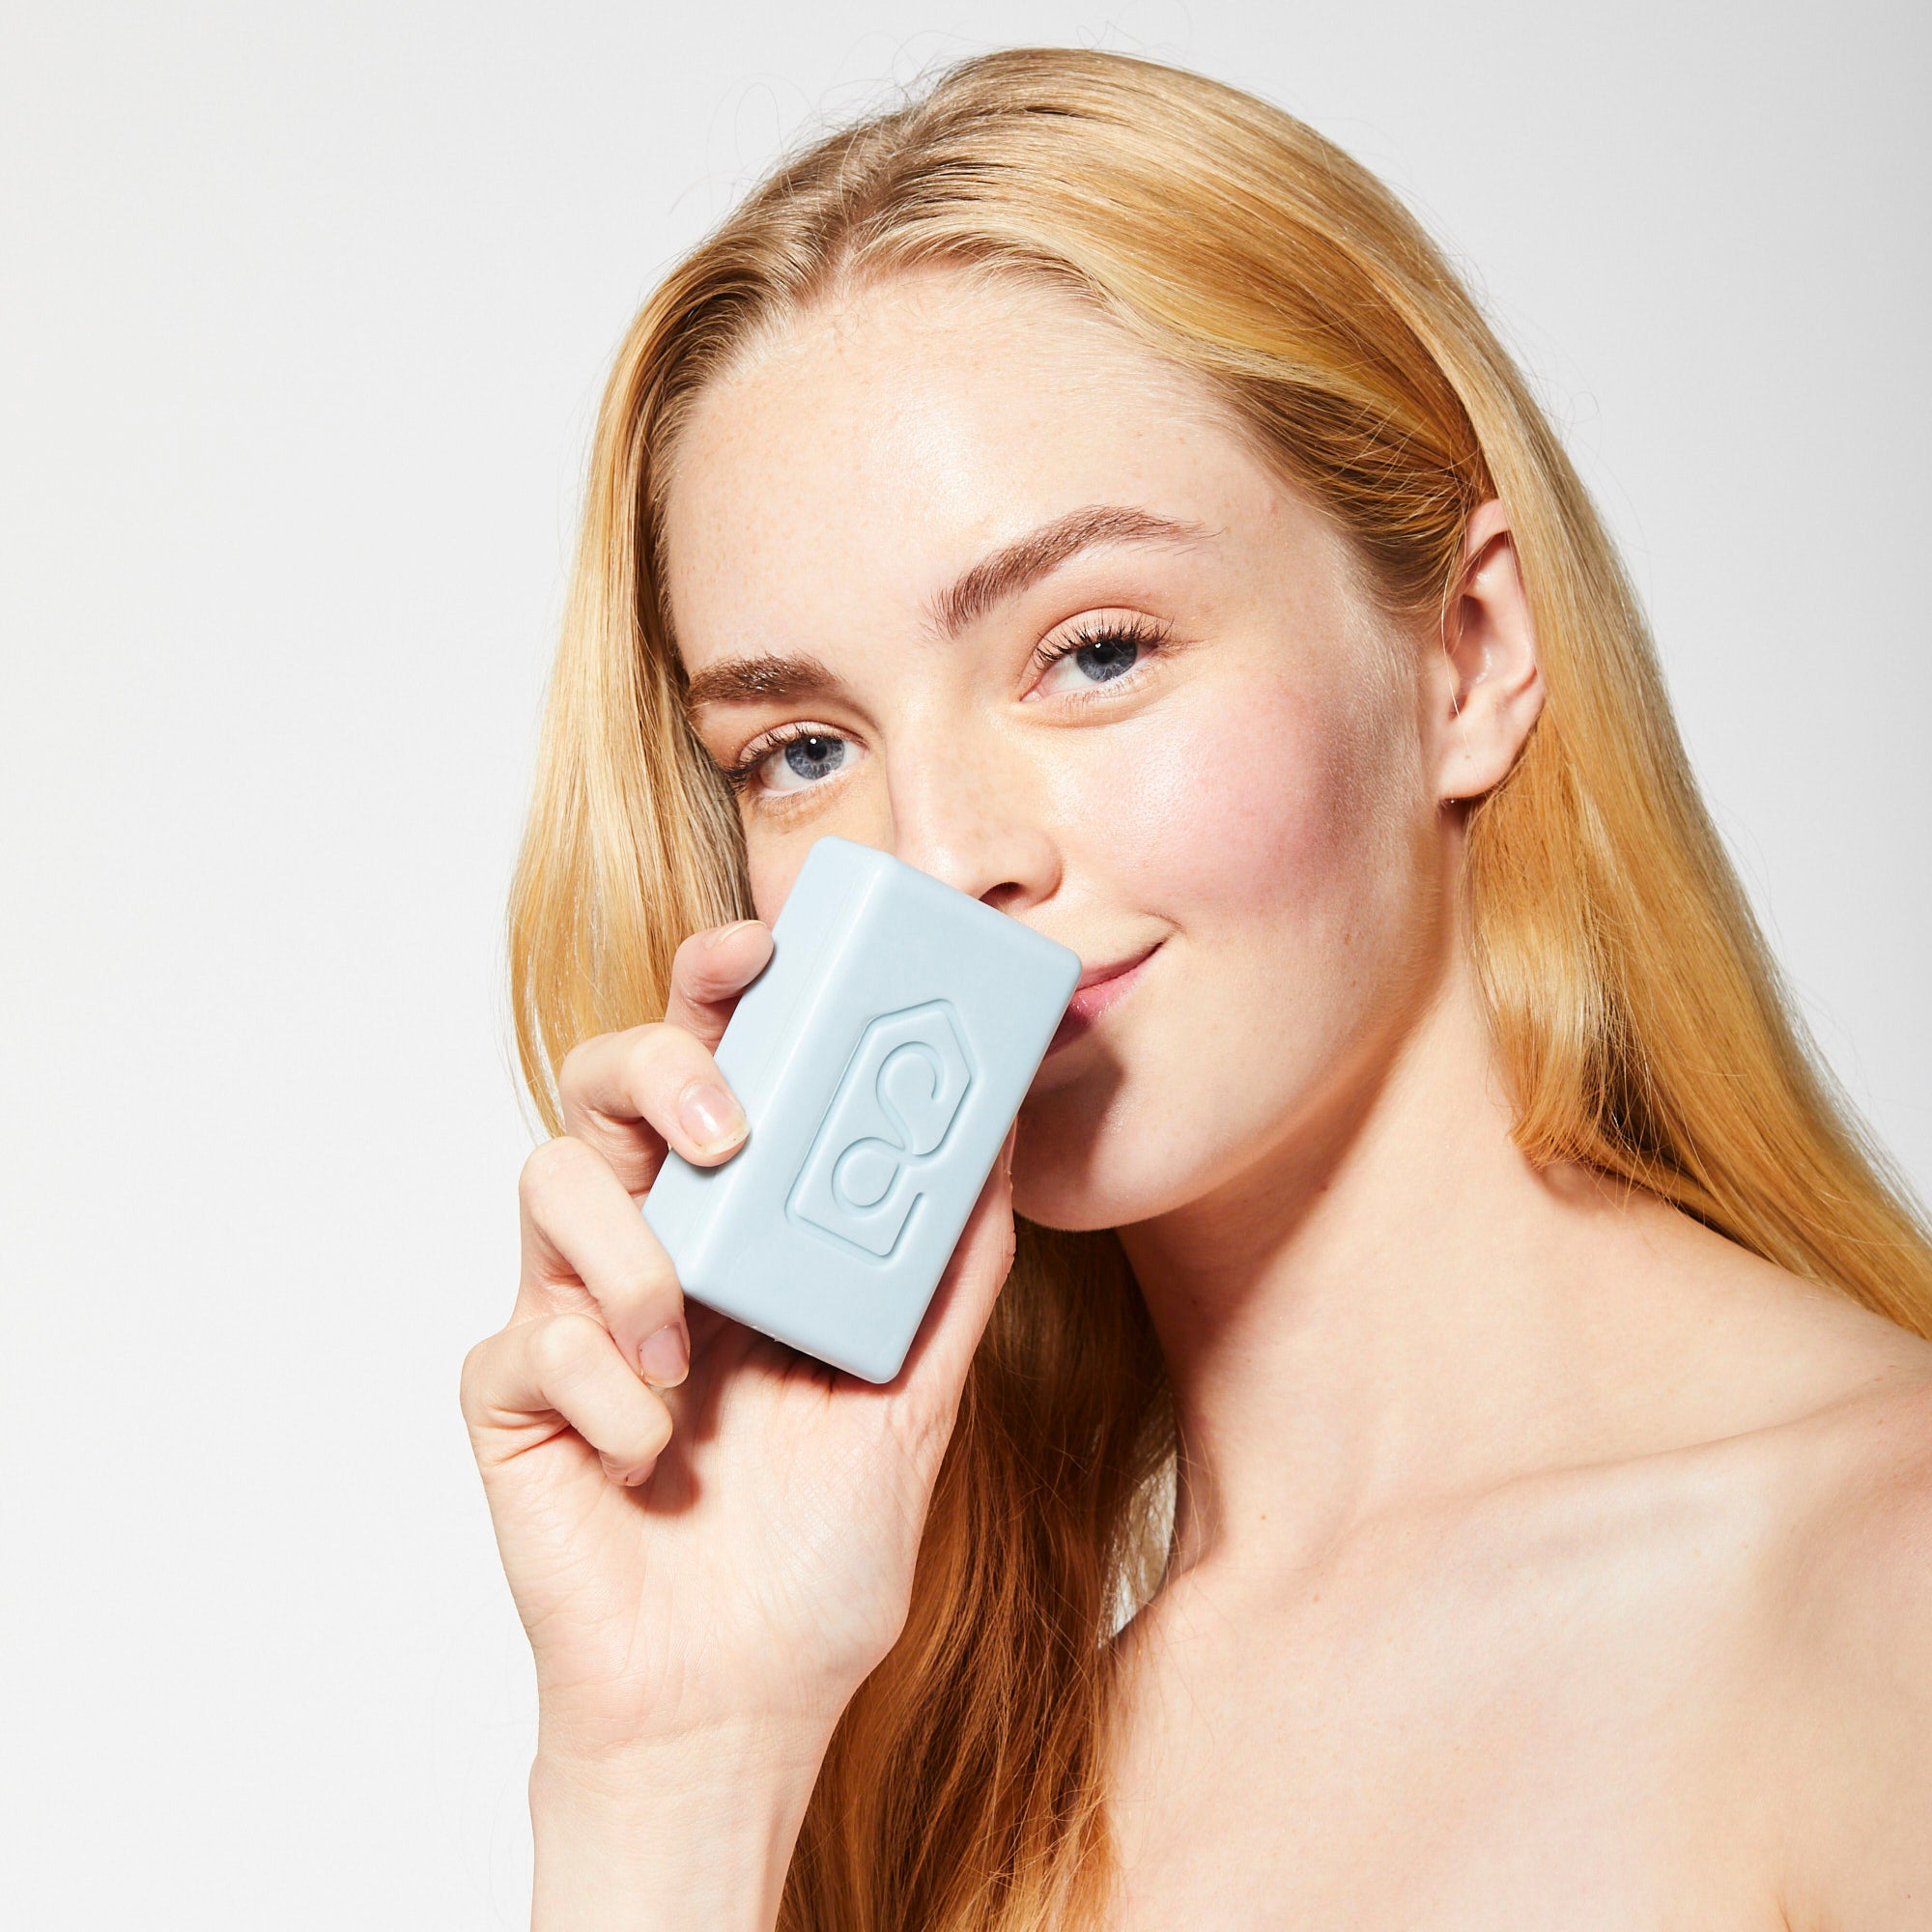 Herbal Blend Bar Soap: woman holding the bar to her nose to smell the fragrance